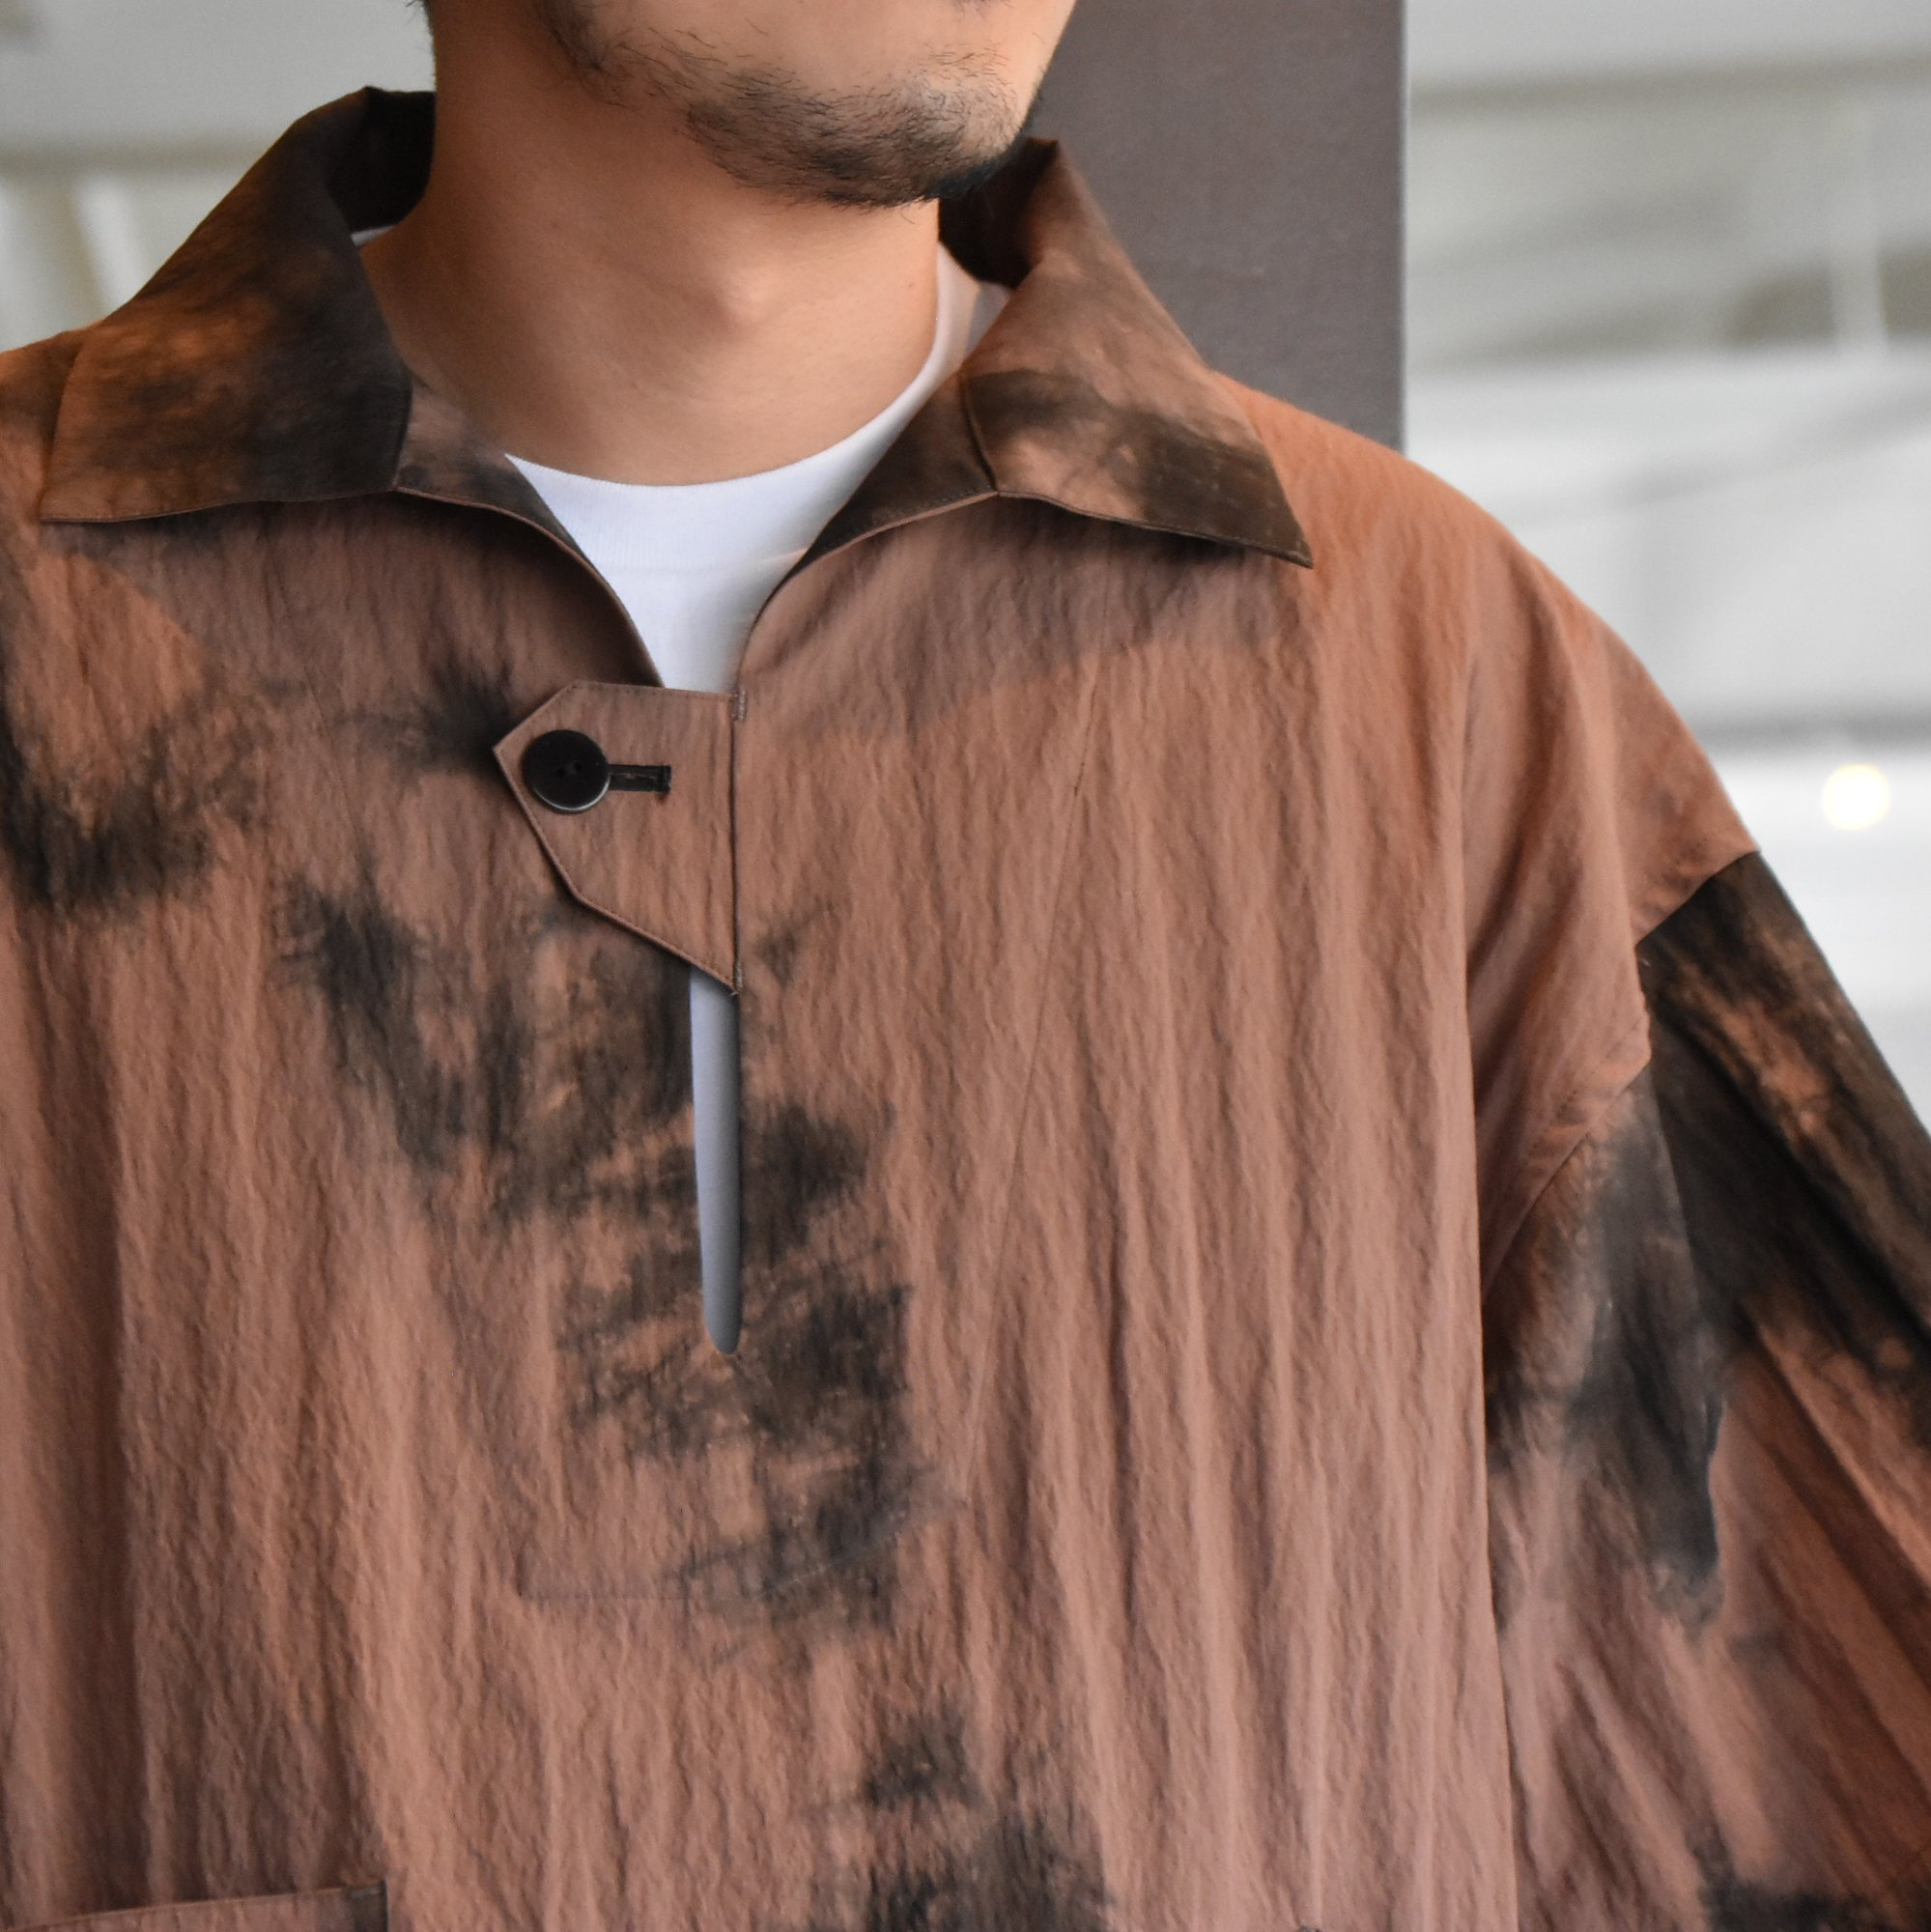 [2021]amachi.(アマチ) Packable Meeting Shirt -Brown Uneven Dye- #AY8-14(2)